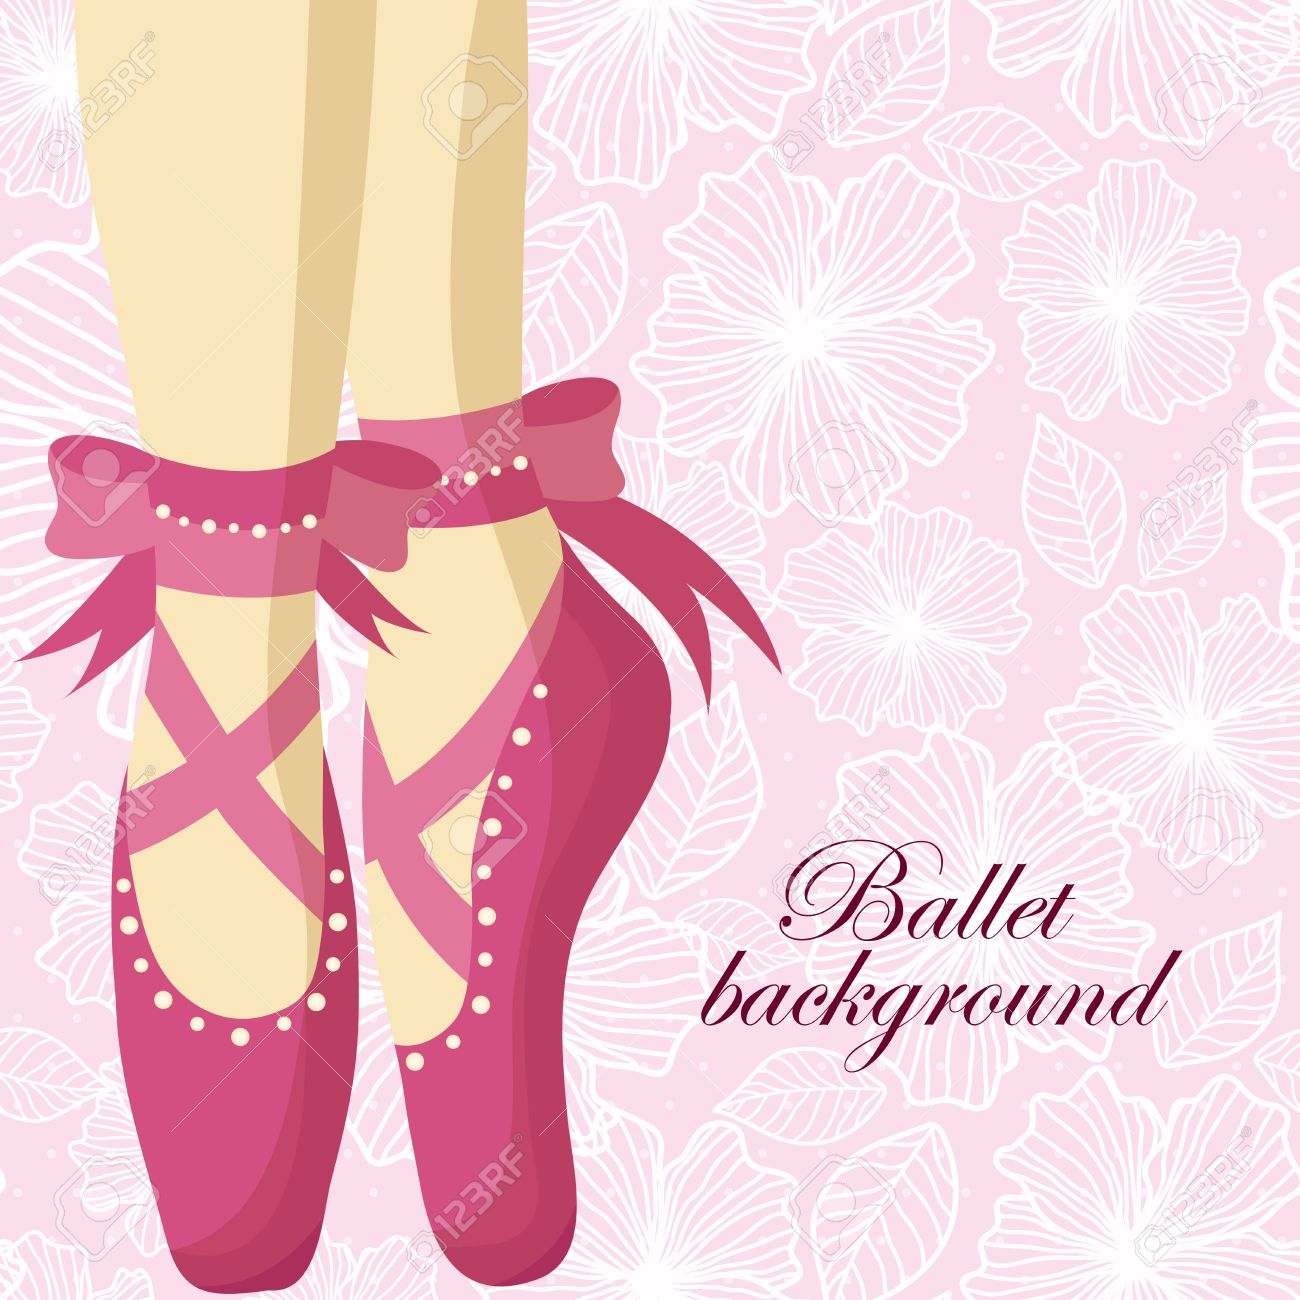 76af6d92bf0ad Beautiful feet of a ballerina in pointe shoes on a pink background with patterns  Stock Vector